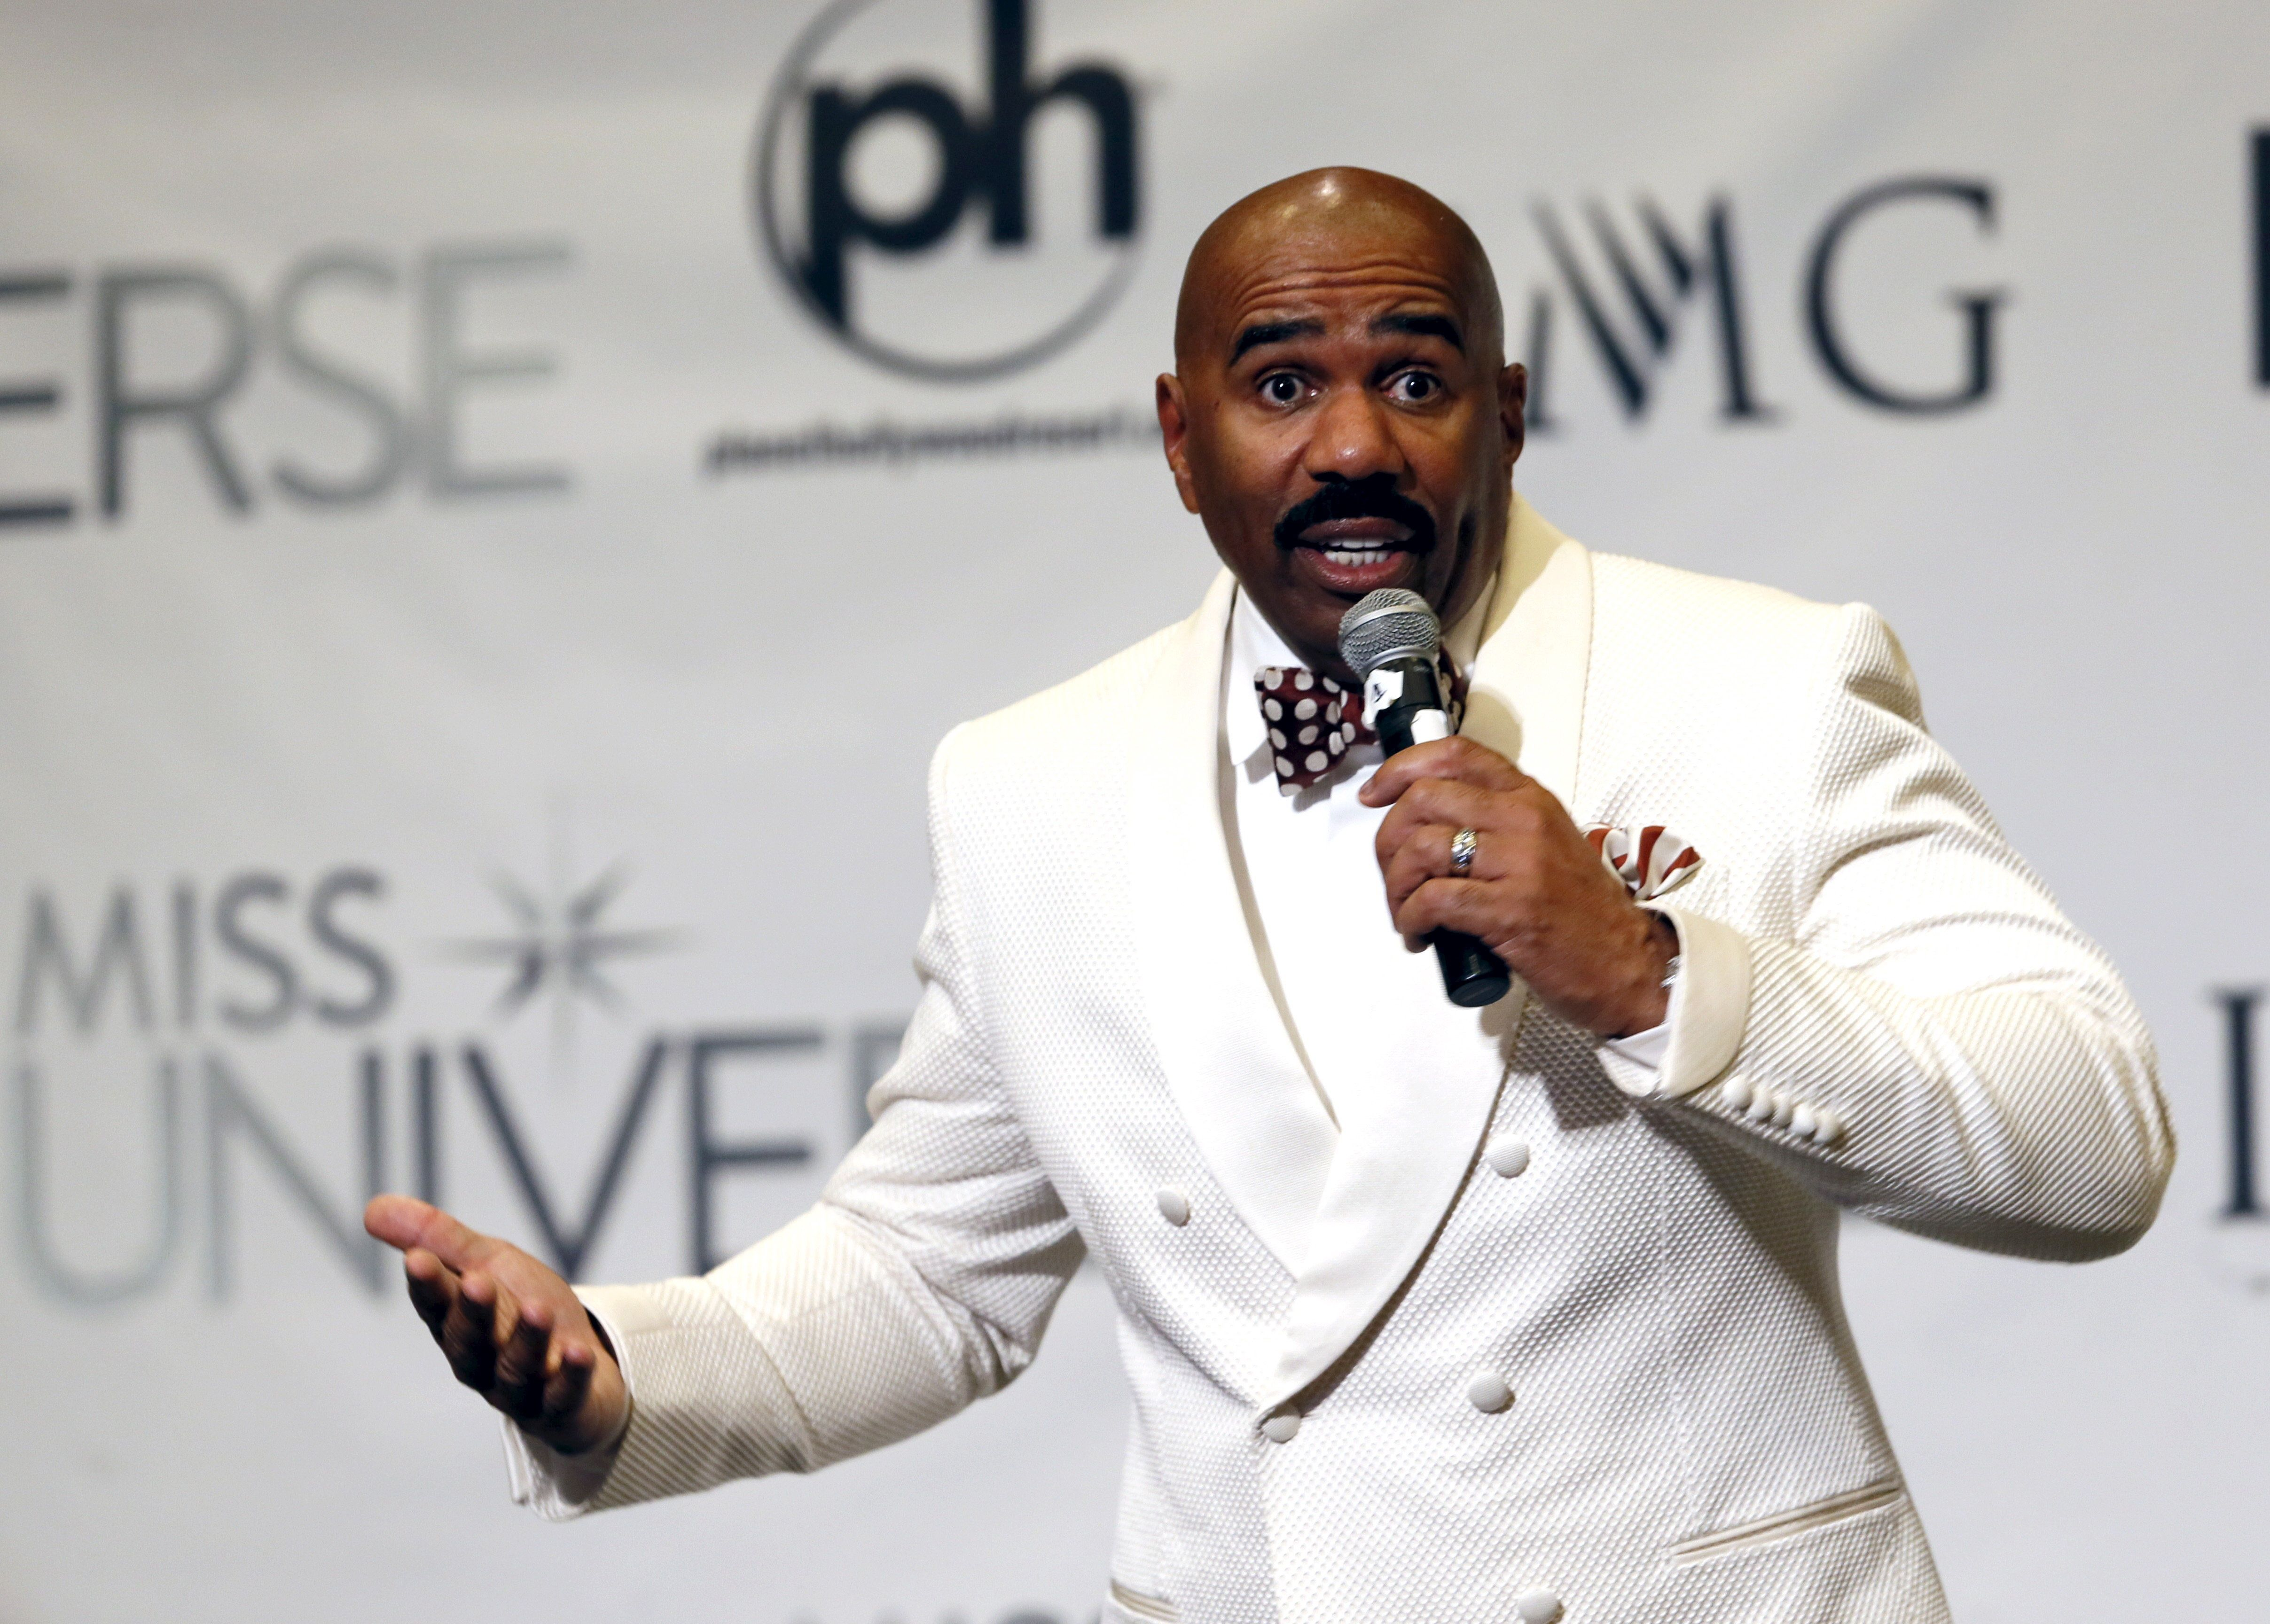 Host Steve Harvey speaks to reporters after the 2015 Miss Universe Pageant in Las Vegas, Nevada, December 20, 2015. Harvey said he misread the card when he made the announcement that Miss Colombia was the winner. Miss Philippines Pia Alonzo Wurtzbach was the actual winner. REUTERS/Steve Marcus ATTENTION EDITORS - FOR EDITORIAL USE ONLY. NOT FOR SALE FOR MARKETING OR ADVERTISING CAMPAIGNS